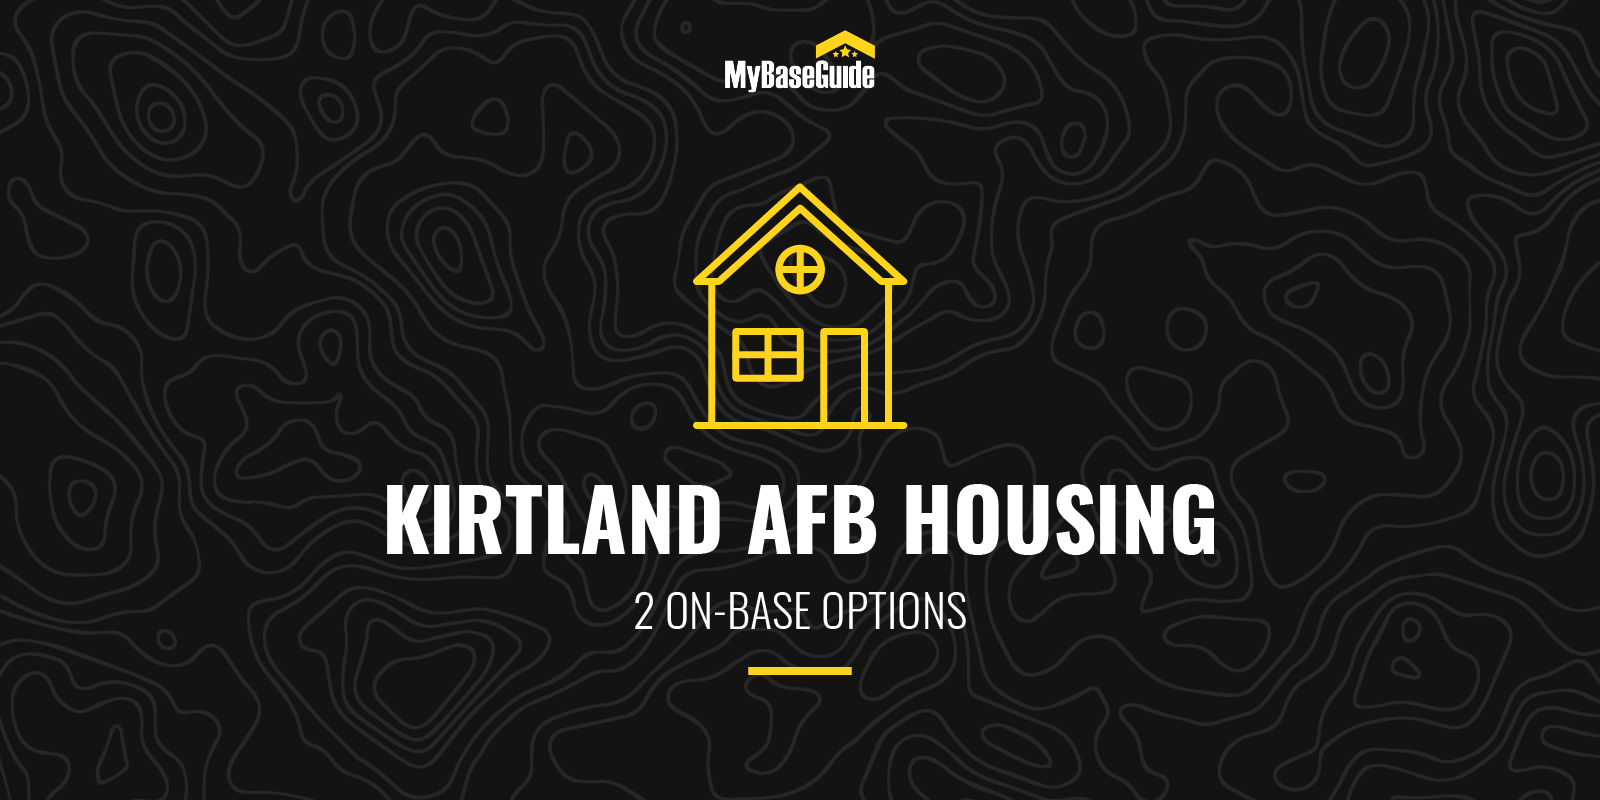 Kirtland AFB Housing: 2 On-Base Options